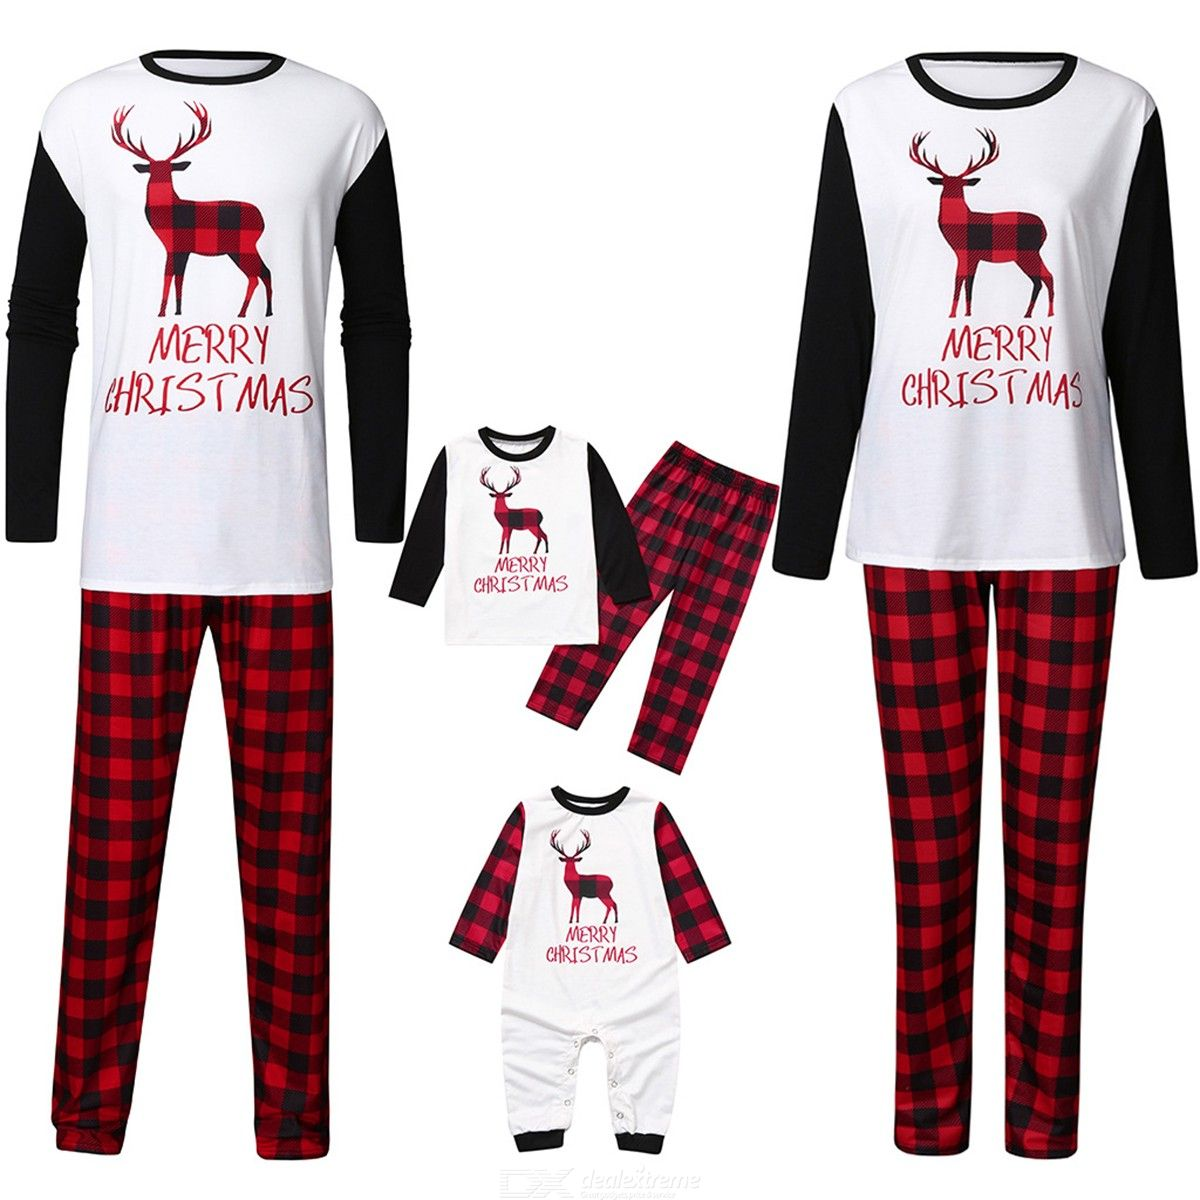 Nightwear | Christmas | Jumpsuit | Pajamas | Family | Romper | Pajama | Cotton | Sleeve | Print | Baby | Long | Kid | Set